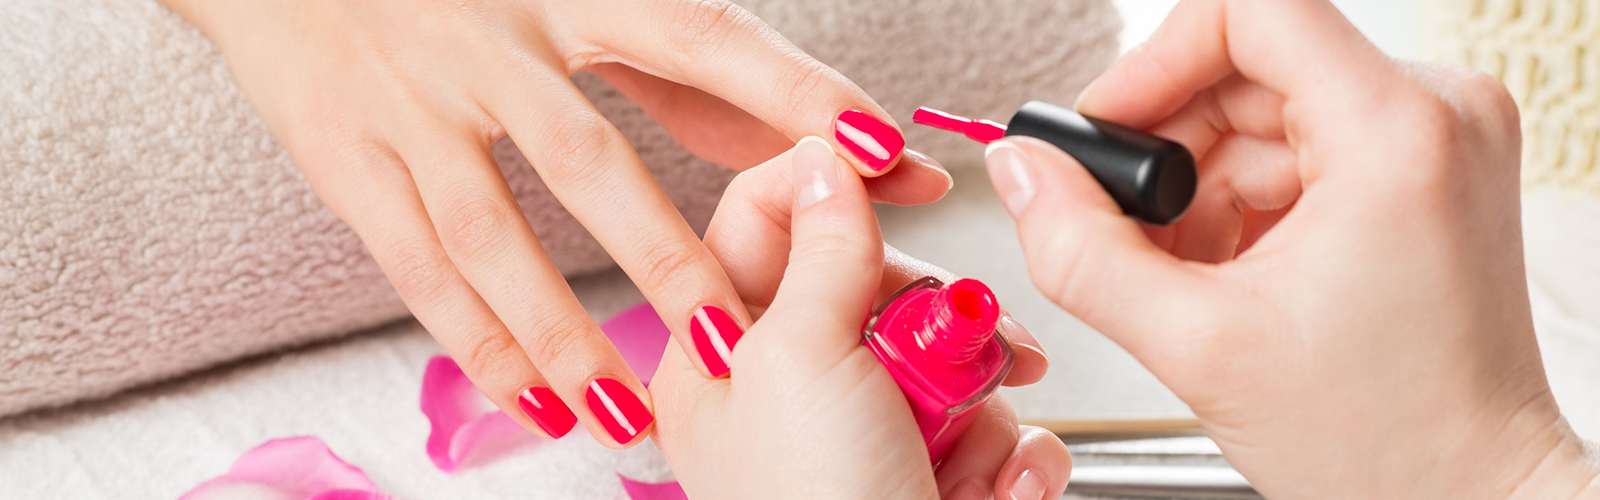 Manicure Red Nails